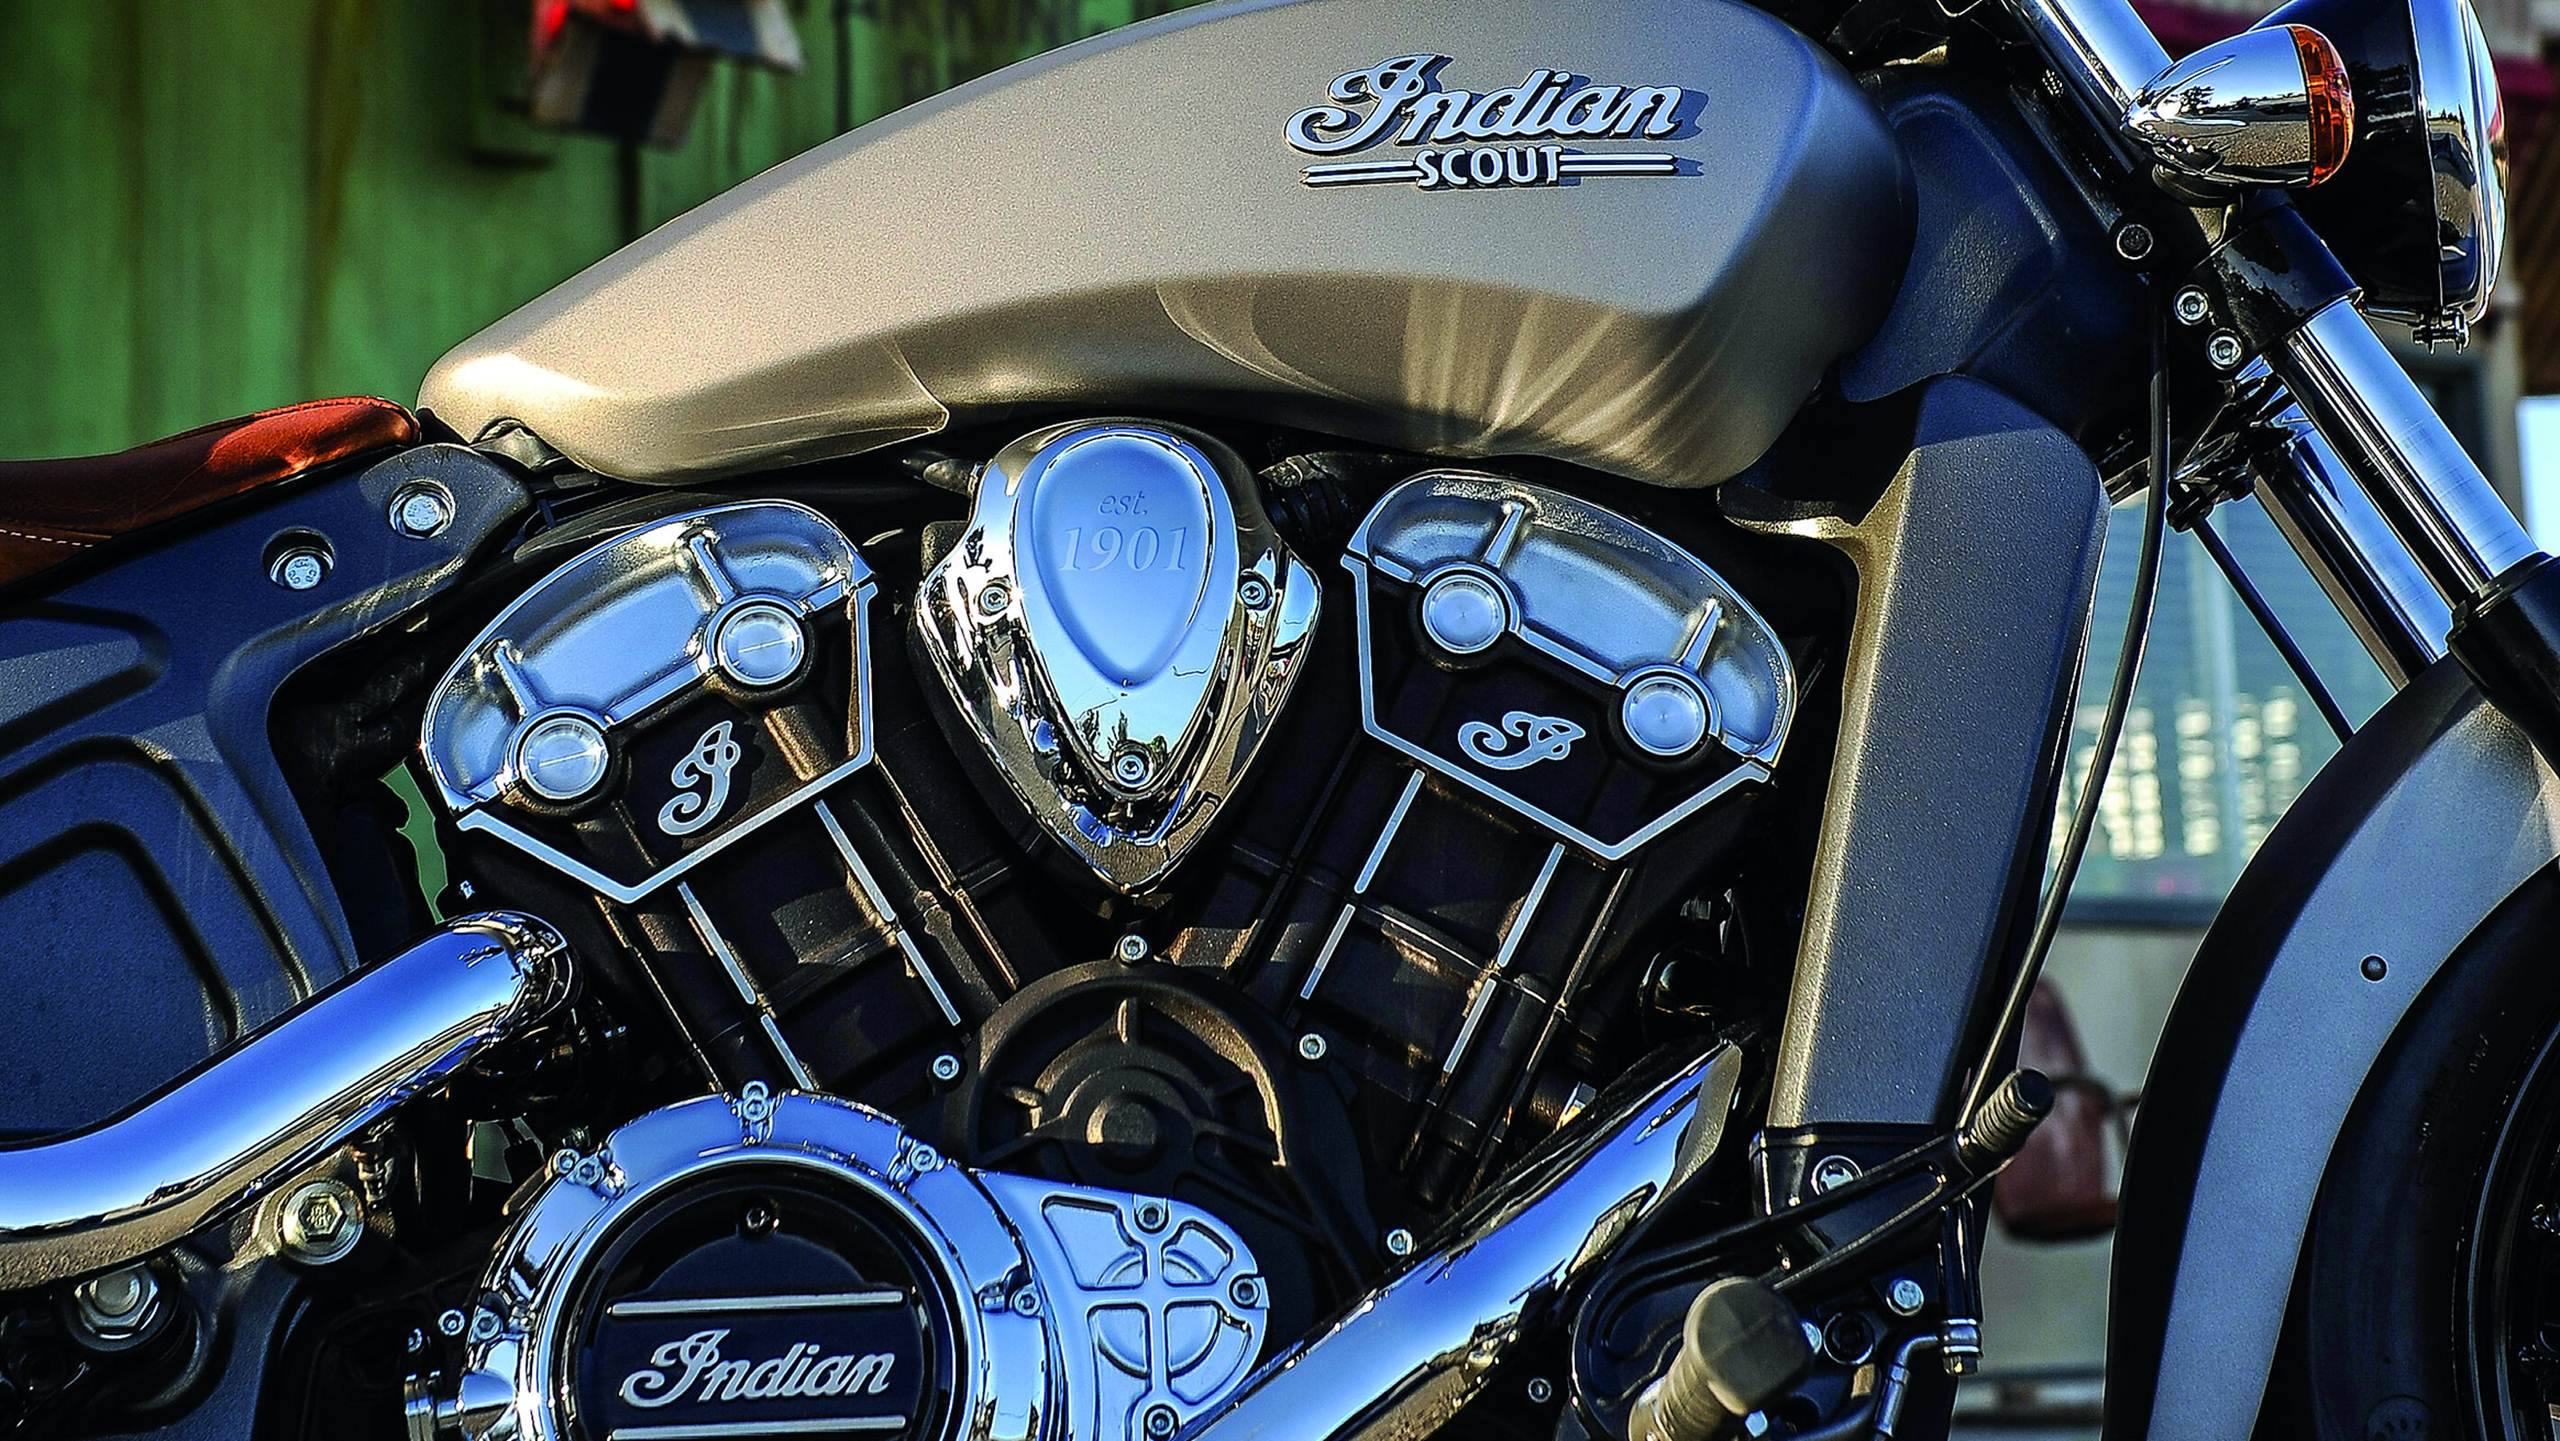 2015 Indian Scout launched - engine